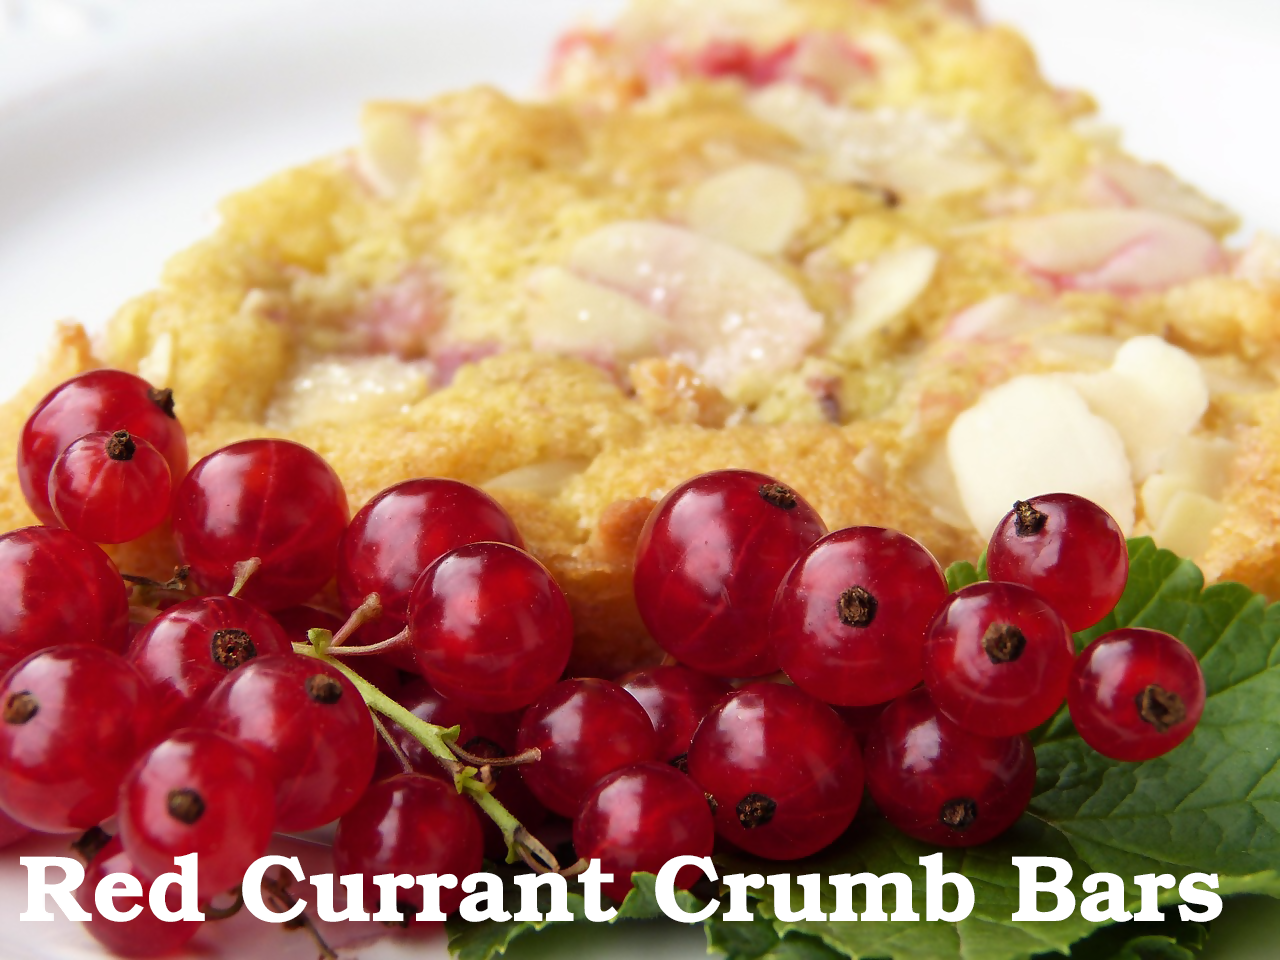 Red Currant Crumb Bars